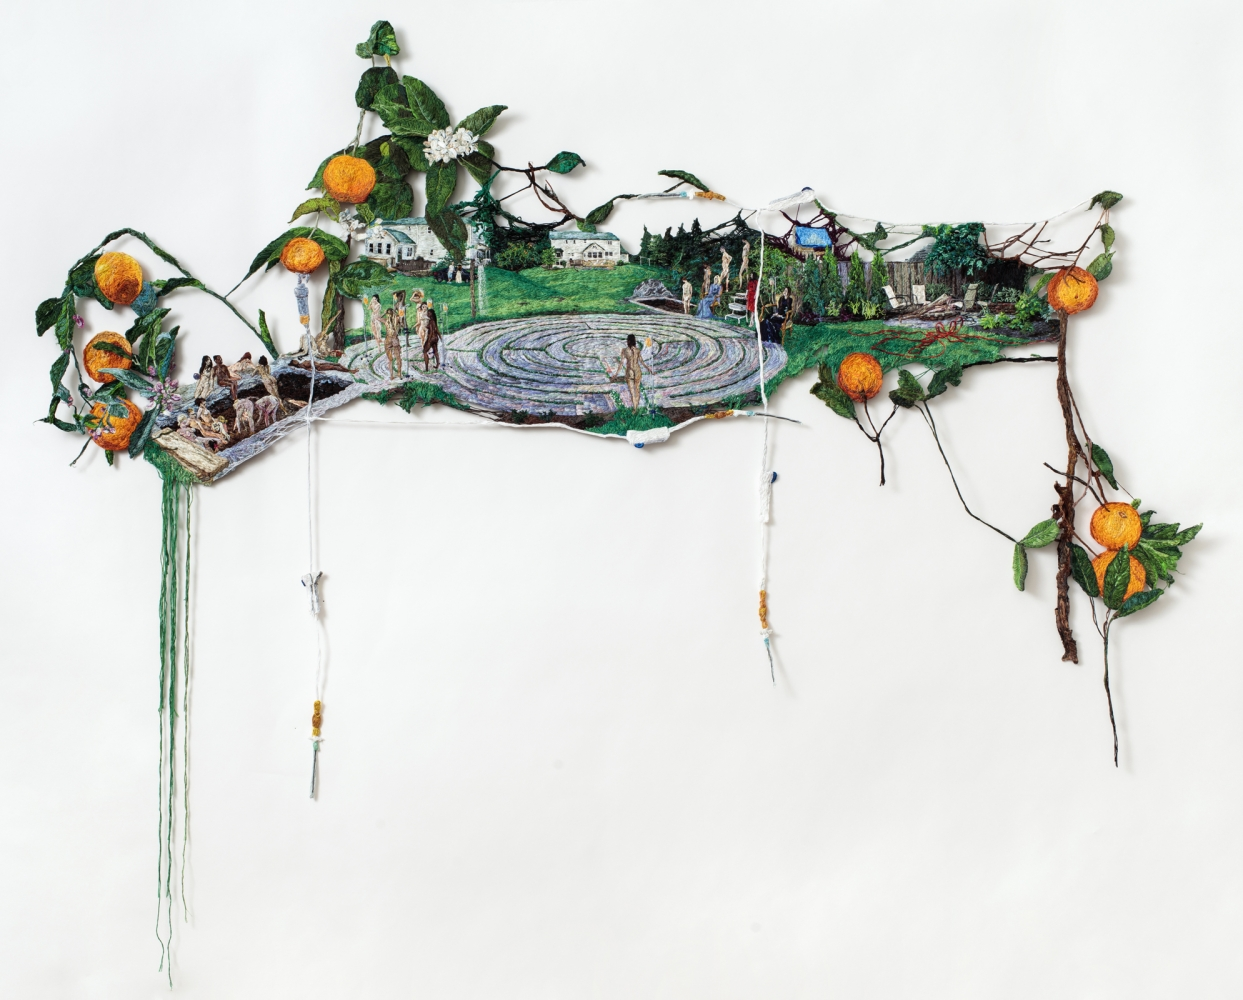 Sophia Narrett. Stuck, 2016. Embroidery thread and fabric, 62 x 38 inches.